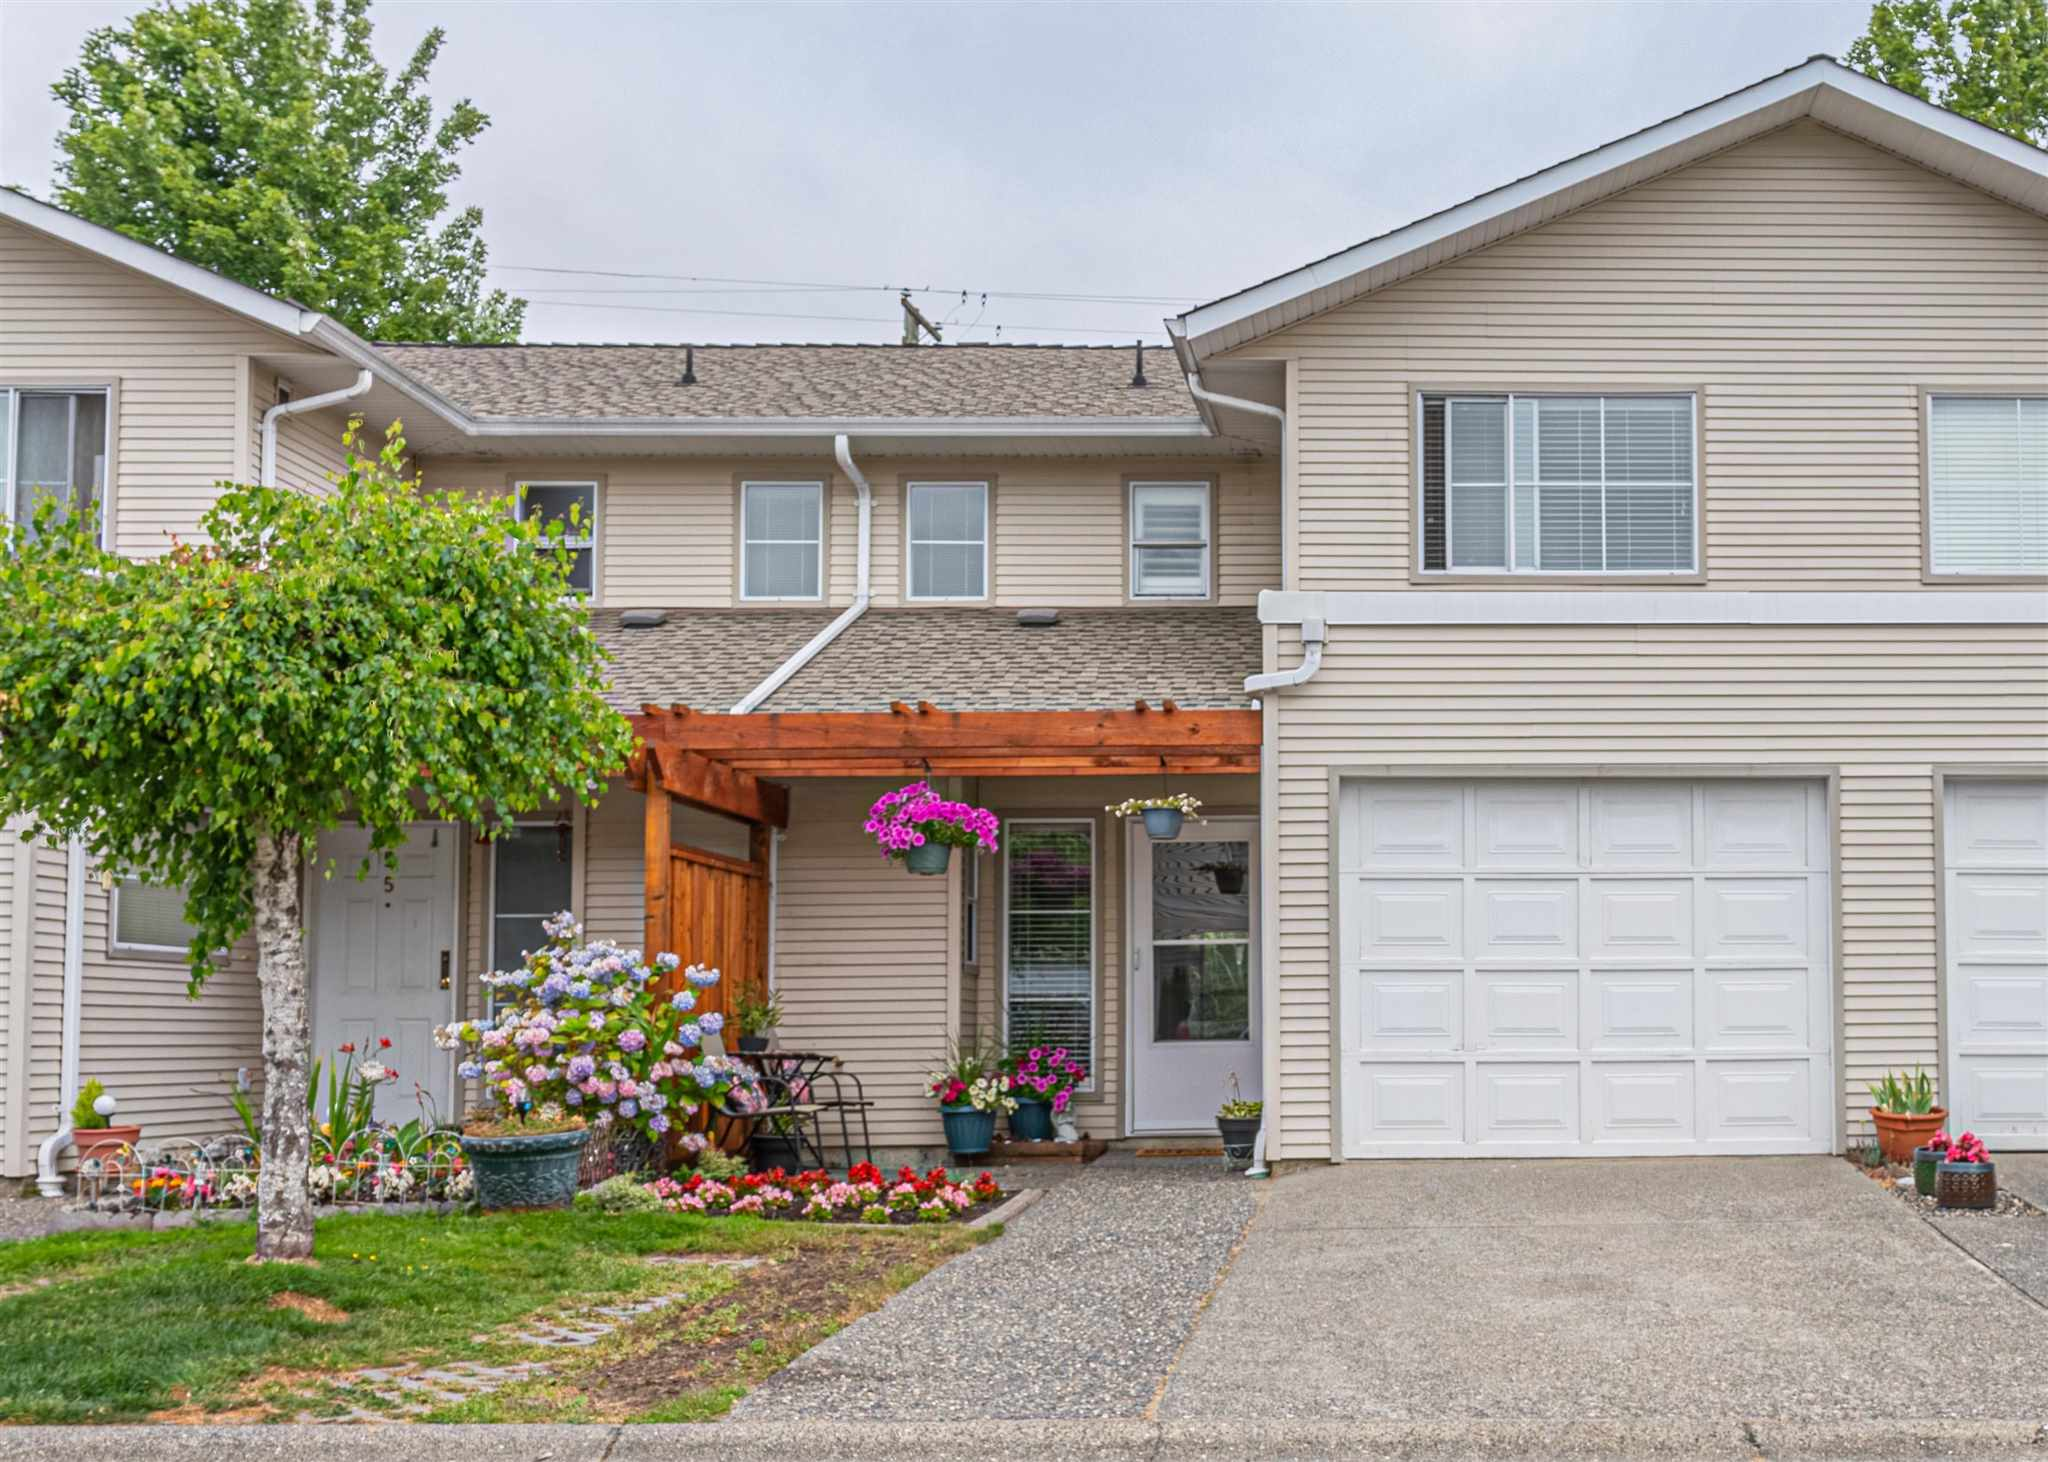 54 16016 82 AVE - Fleetwood Tynehead Townhouse for sale, 3 Bedrooms (R2602673)